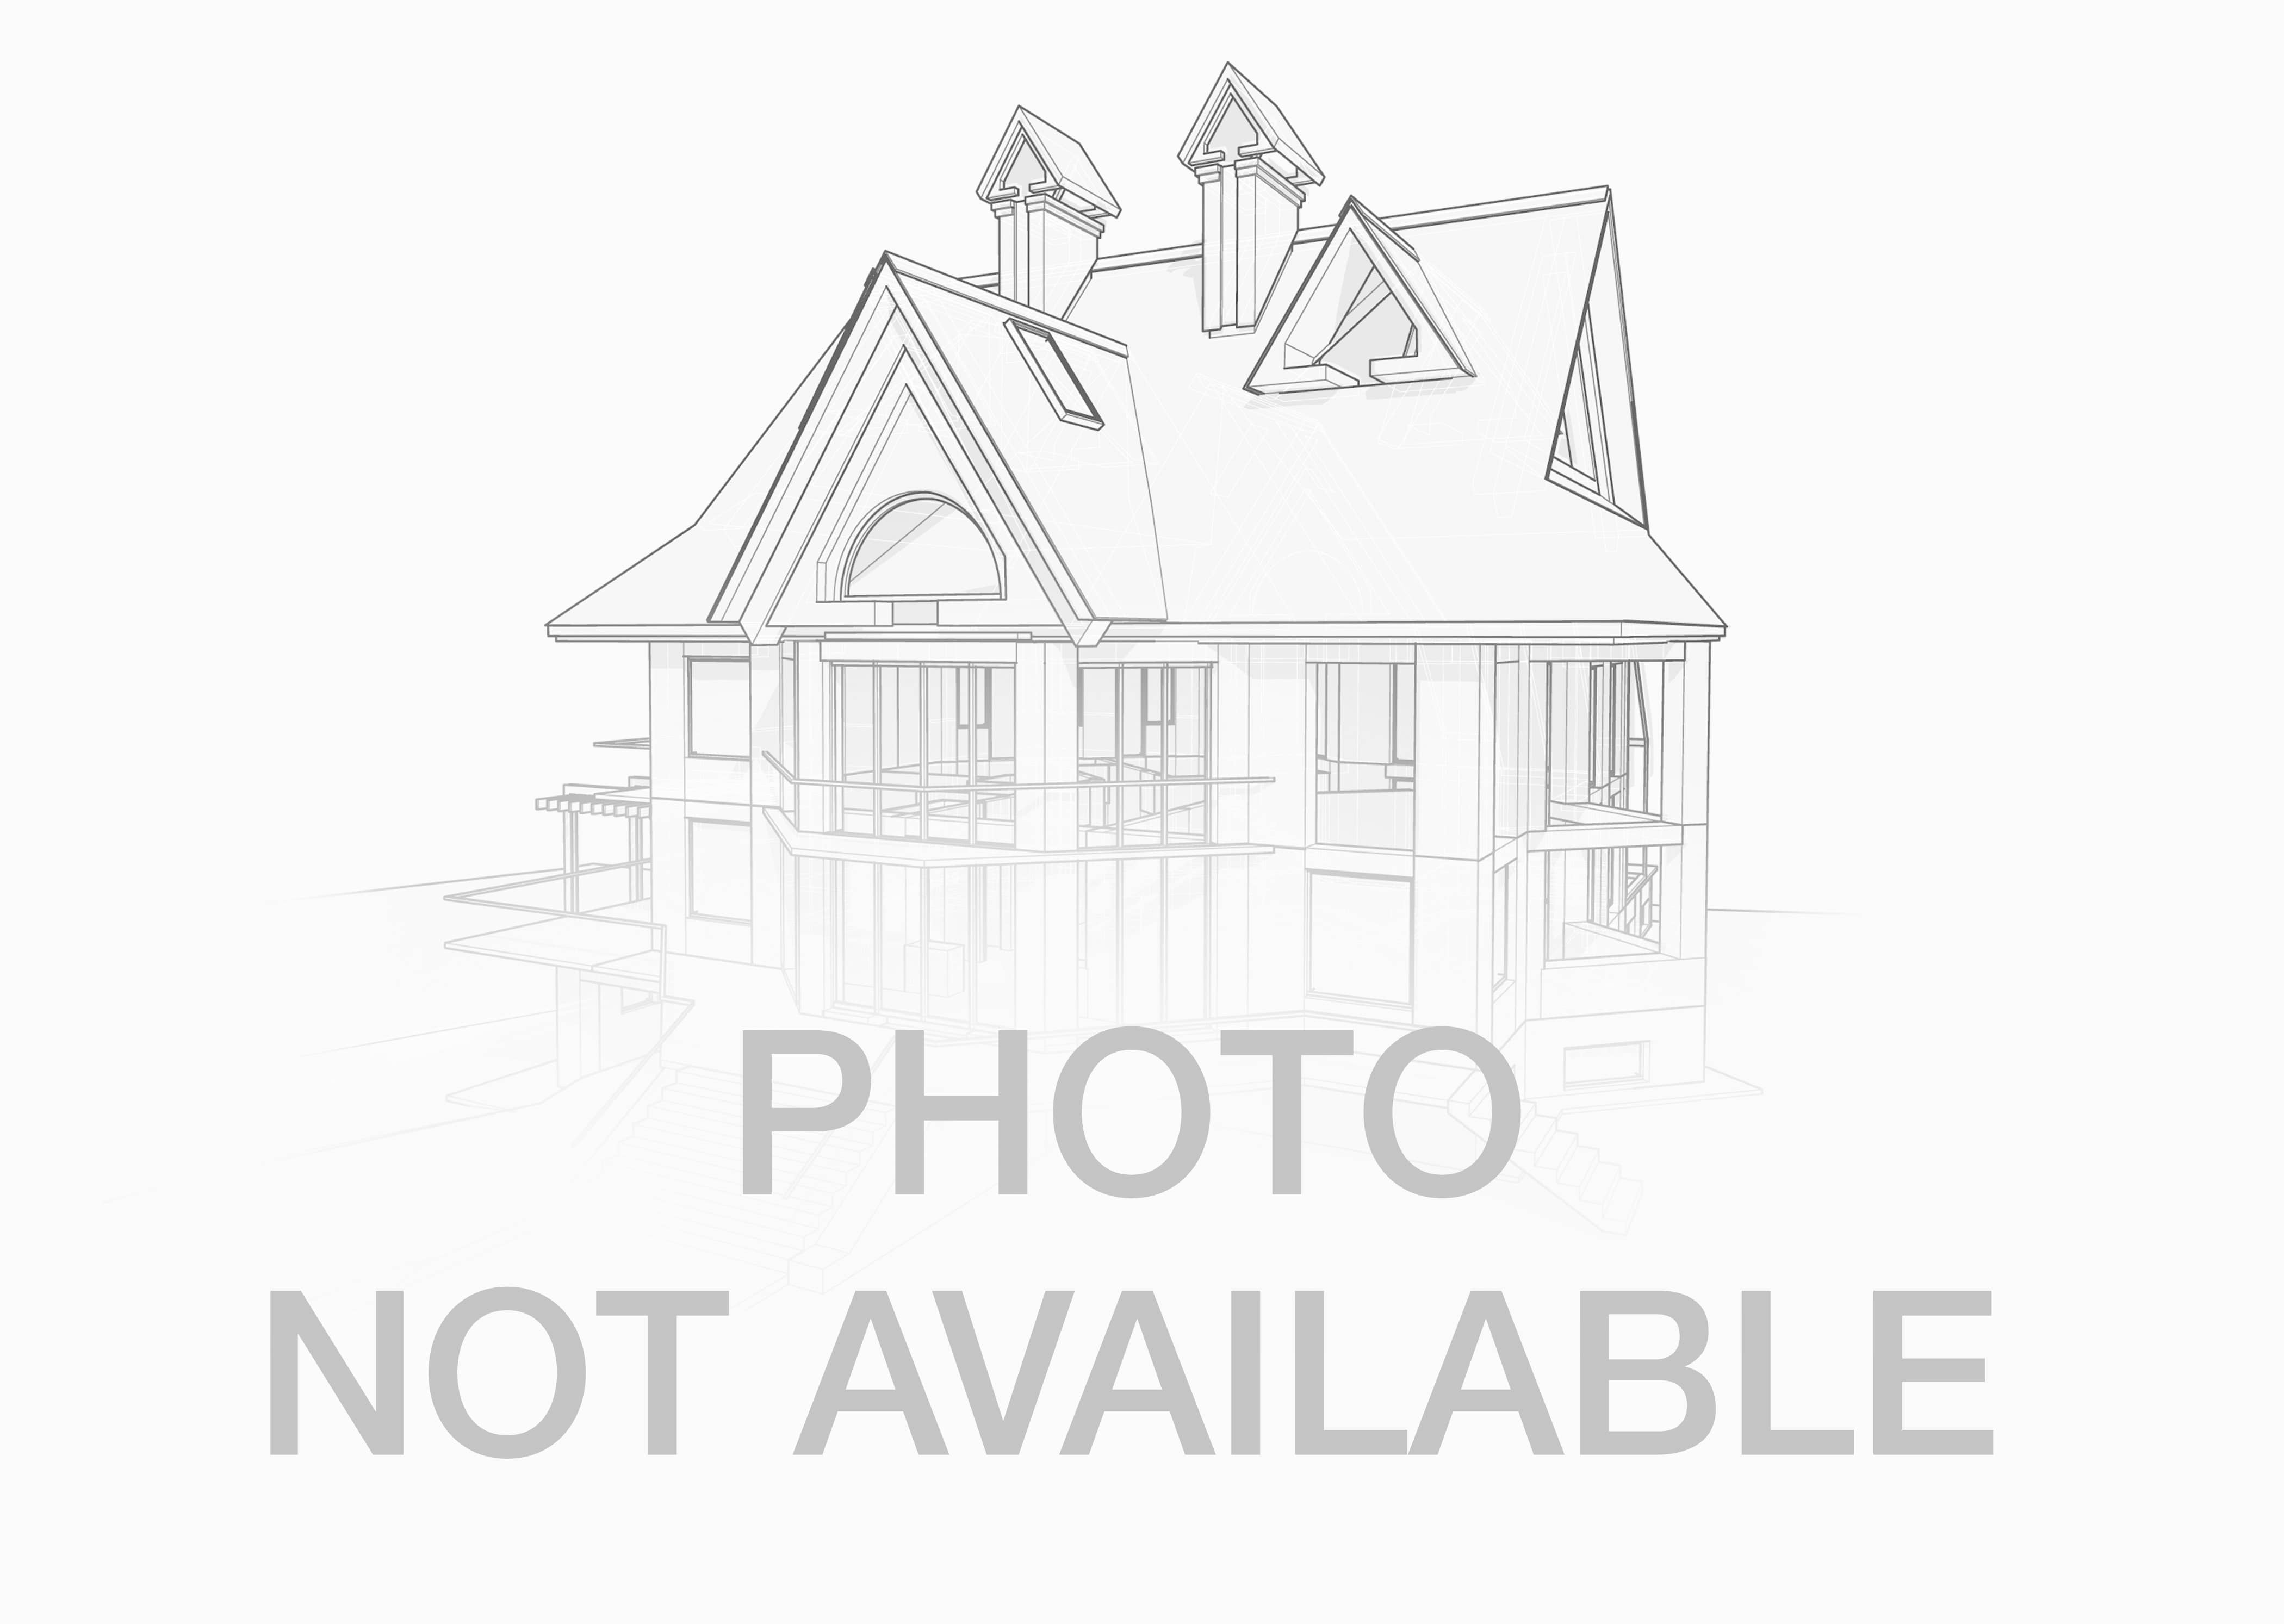 listings search results from ladawn knicely with hometown realty group rh lknicely hometownrealtygroup com